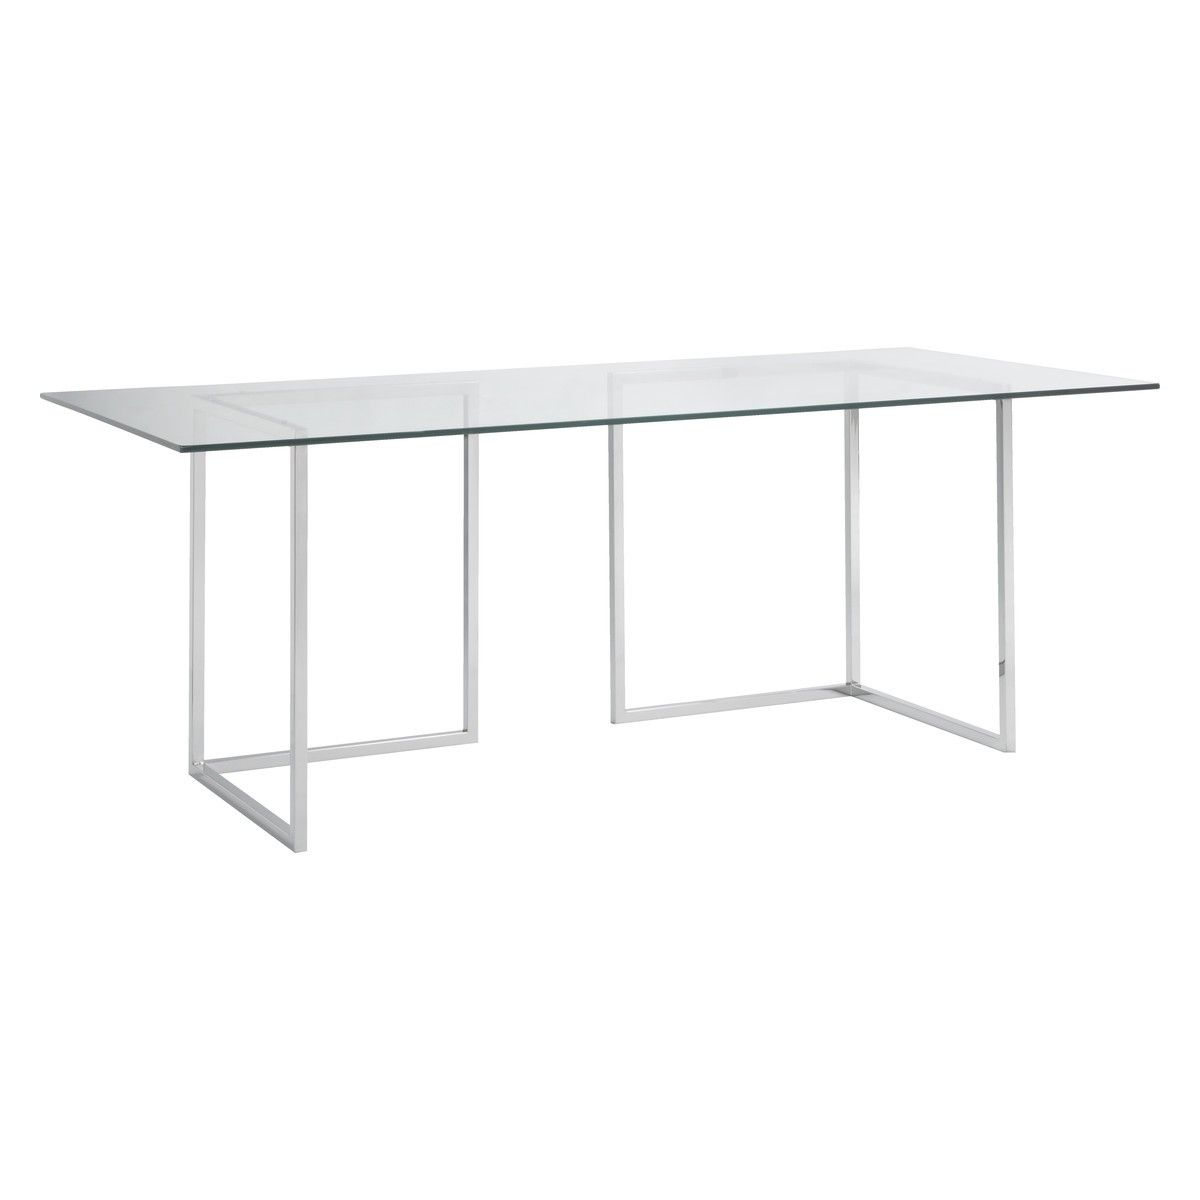 Habitat Metal Desks Desks And Chrome # Habitat Meuble Tv